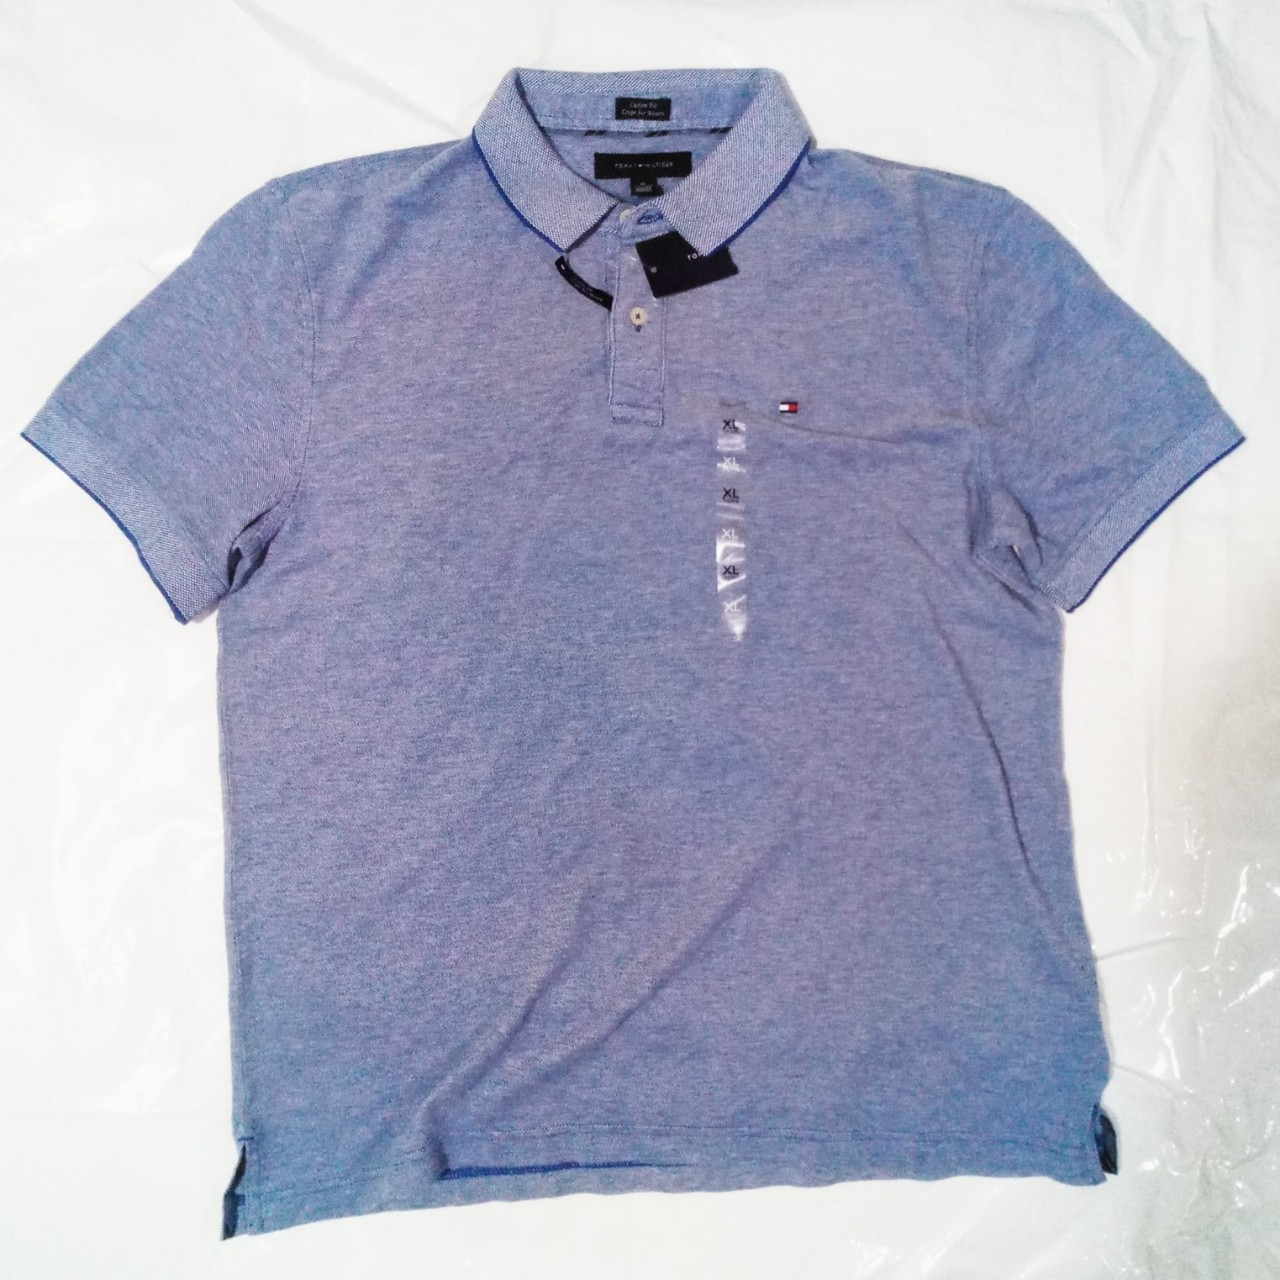 Tommy Hilfiger POLO SHIRT new with tag MEN/'S CUSTOM Fit